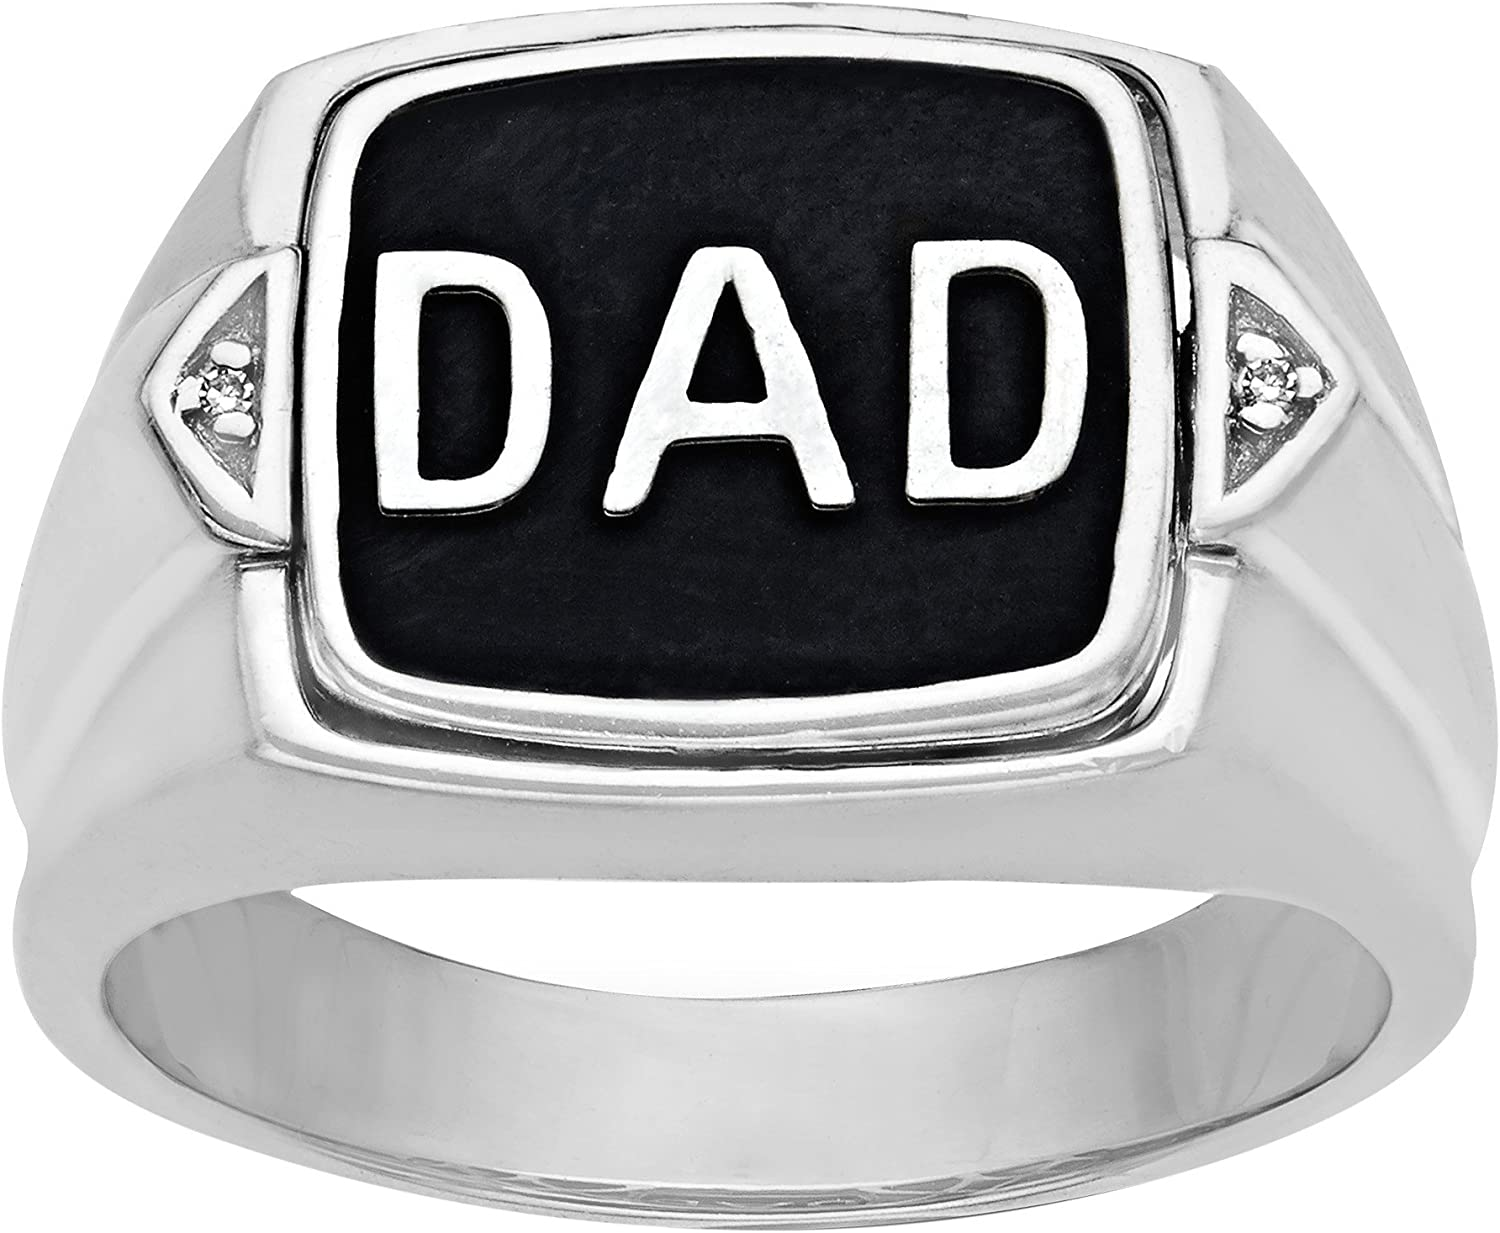 'Dad' Onyx Flip Rings mit Diamonds bei Sterling Silver